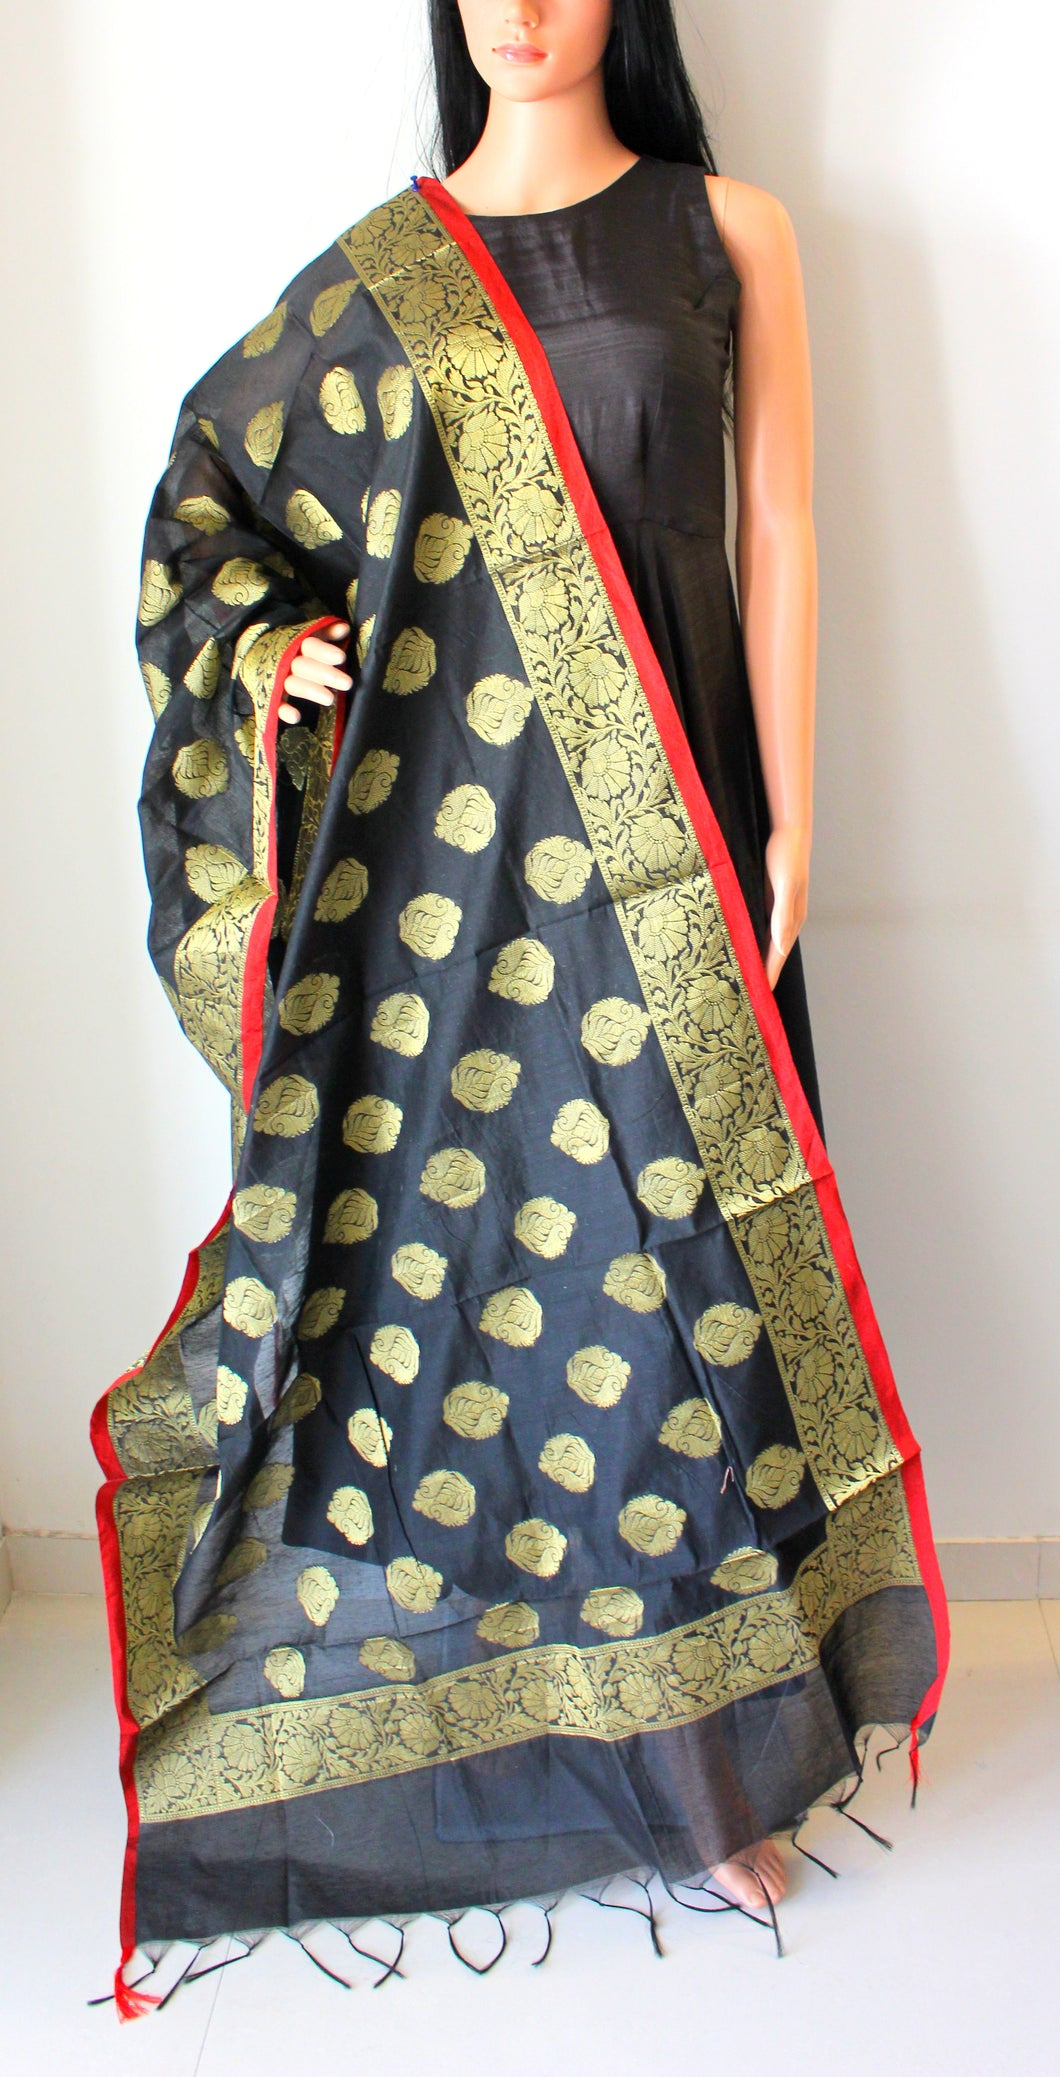 Black Banarasi Brocade Handwoven Cotton Silk Dupatta